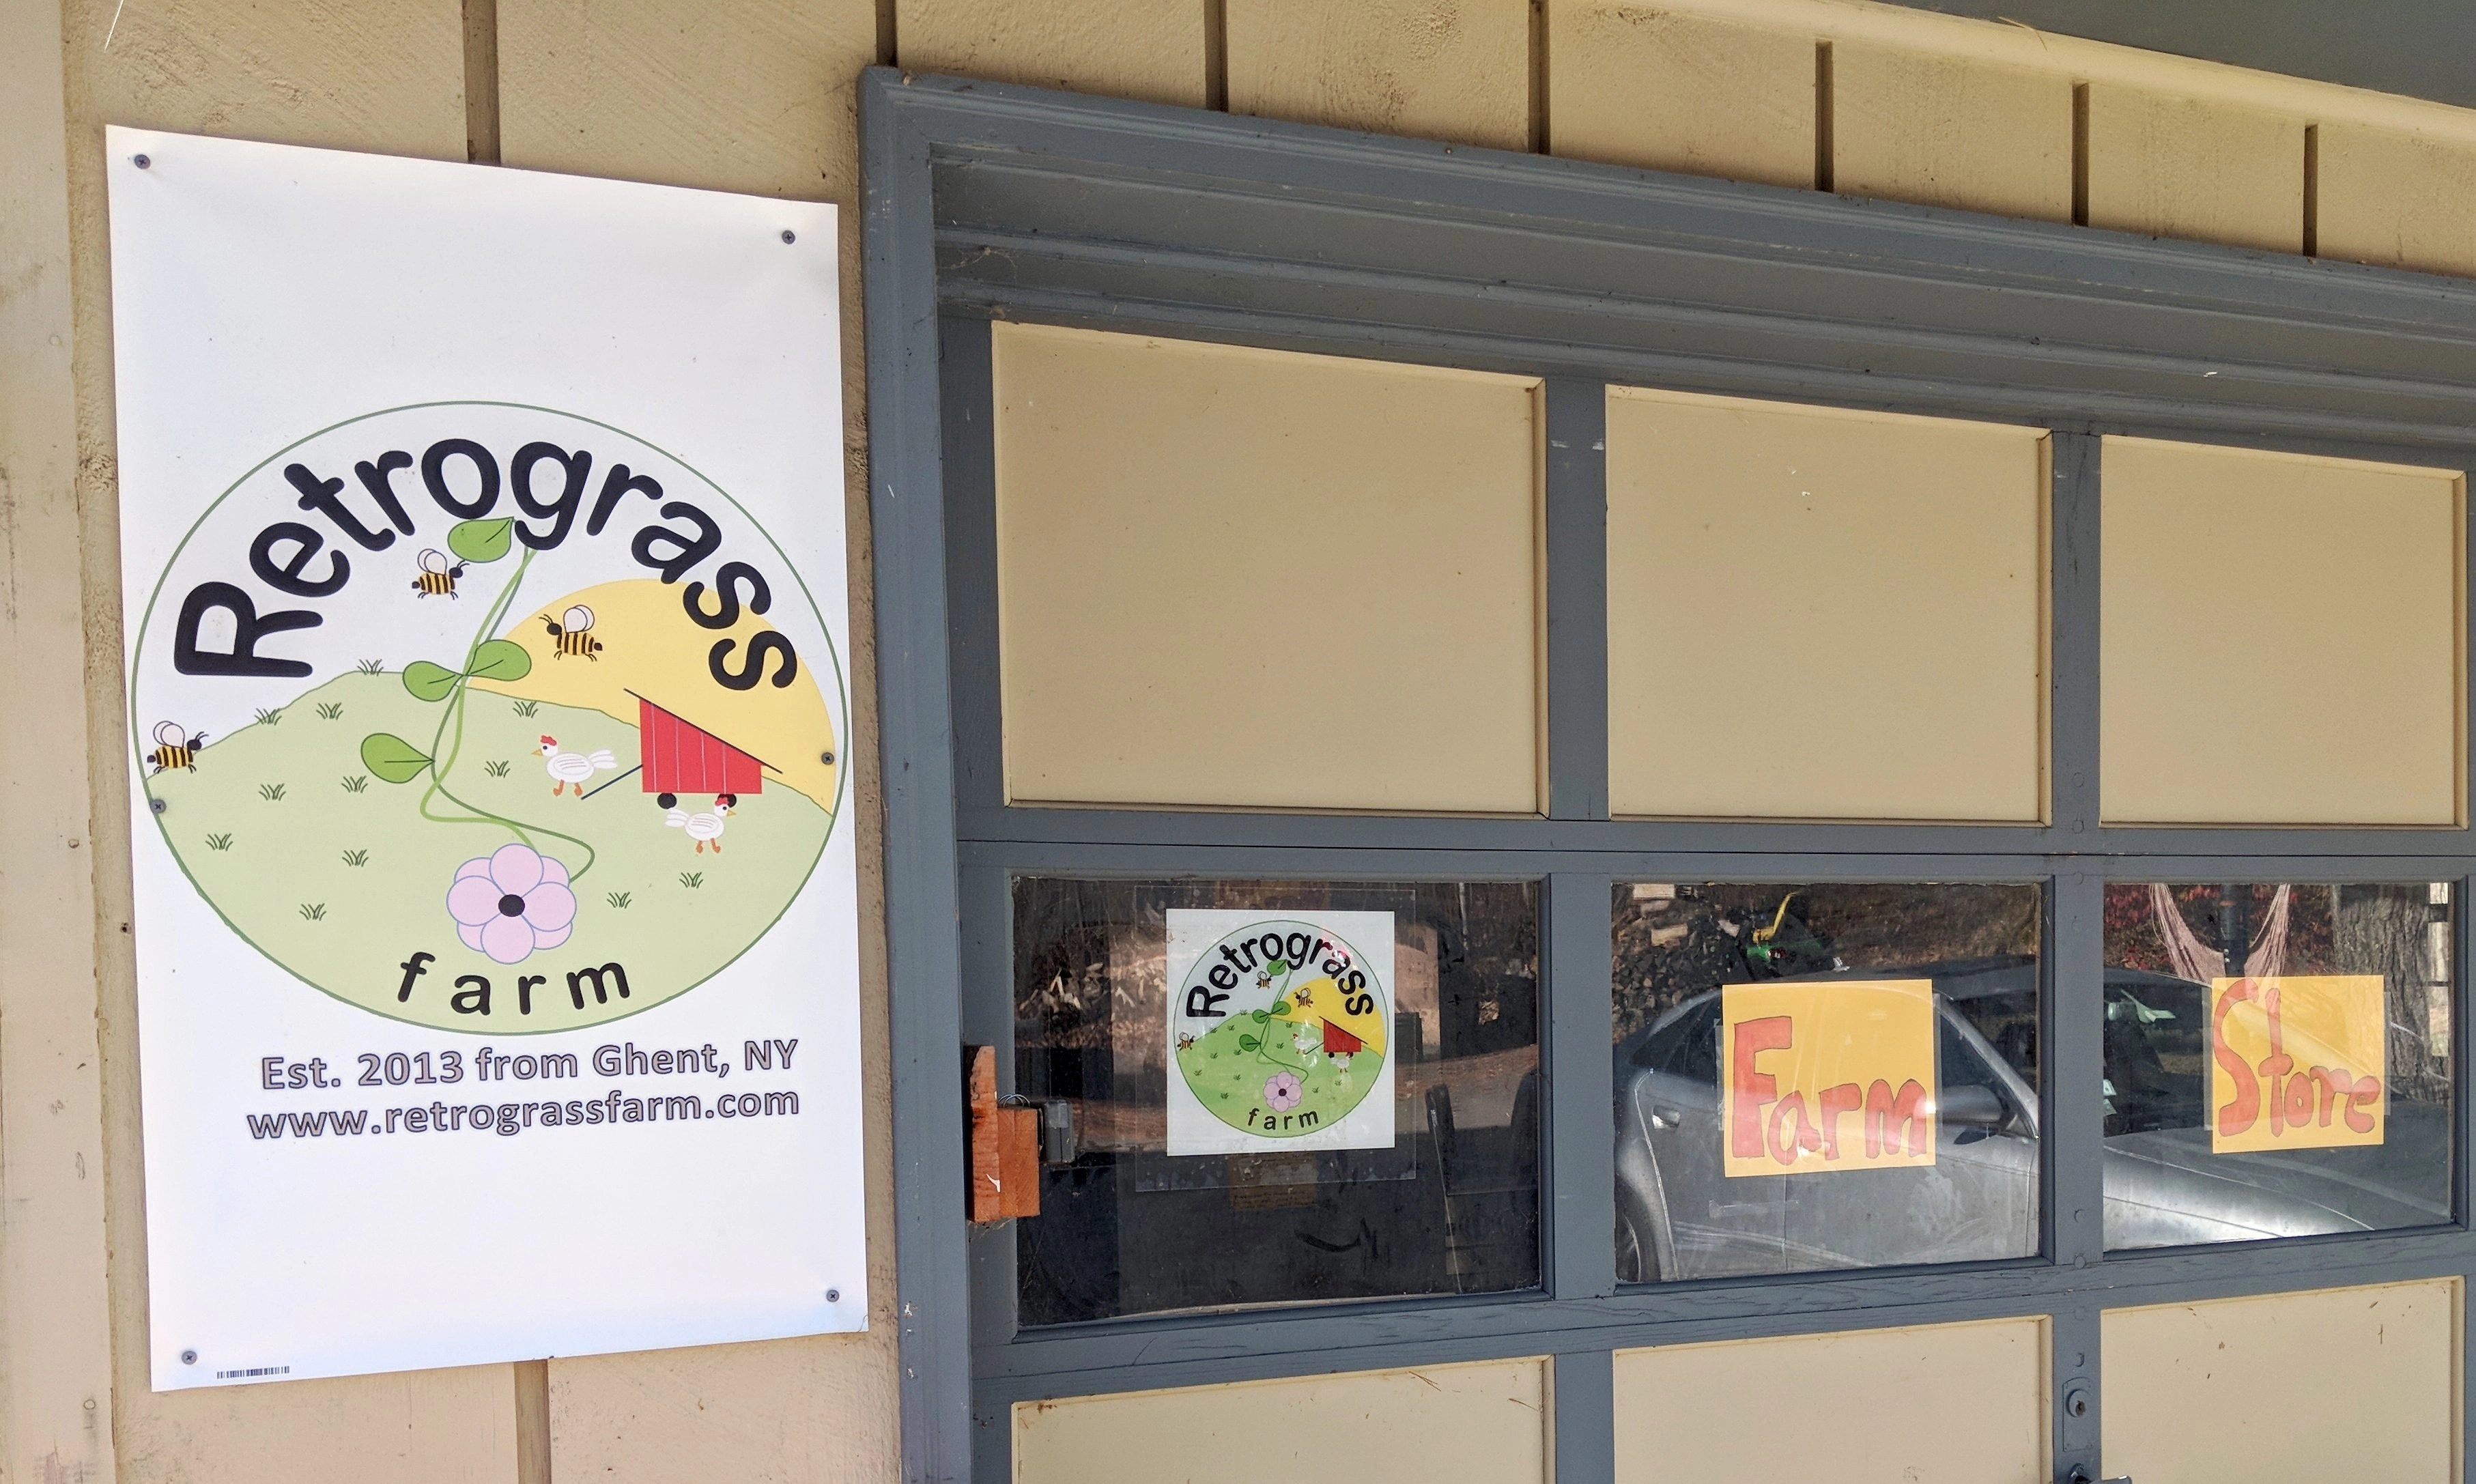 The Retrograss Farm Store with local farm fresh food for purchase